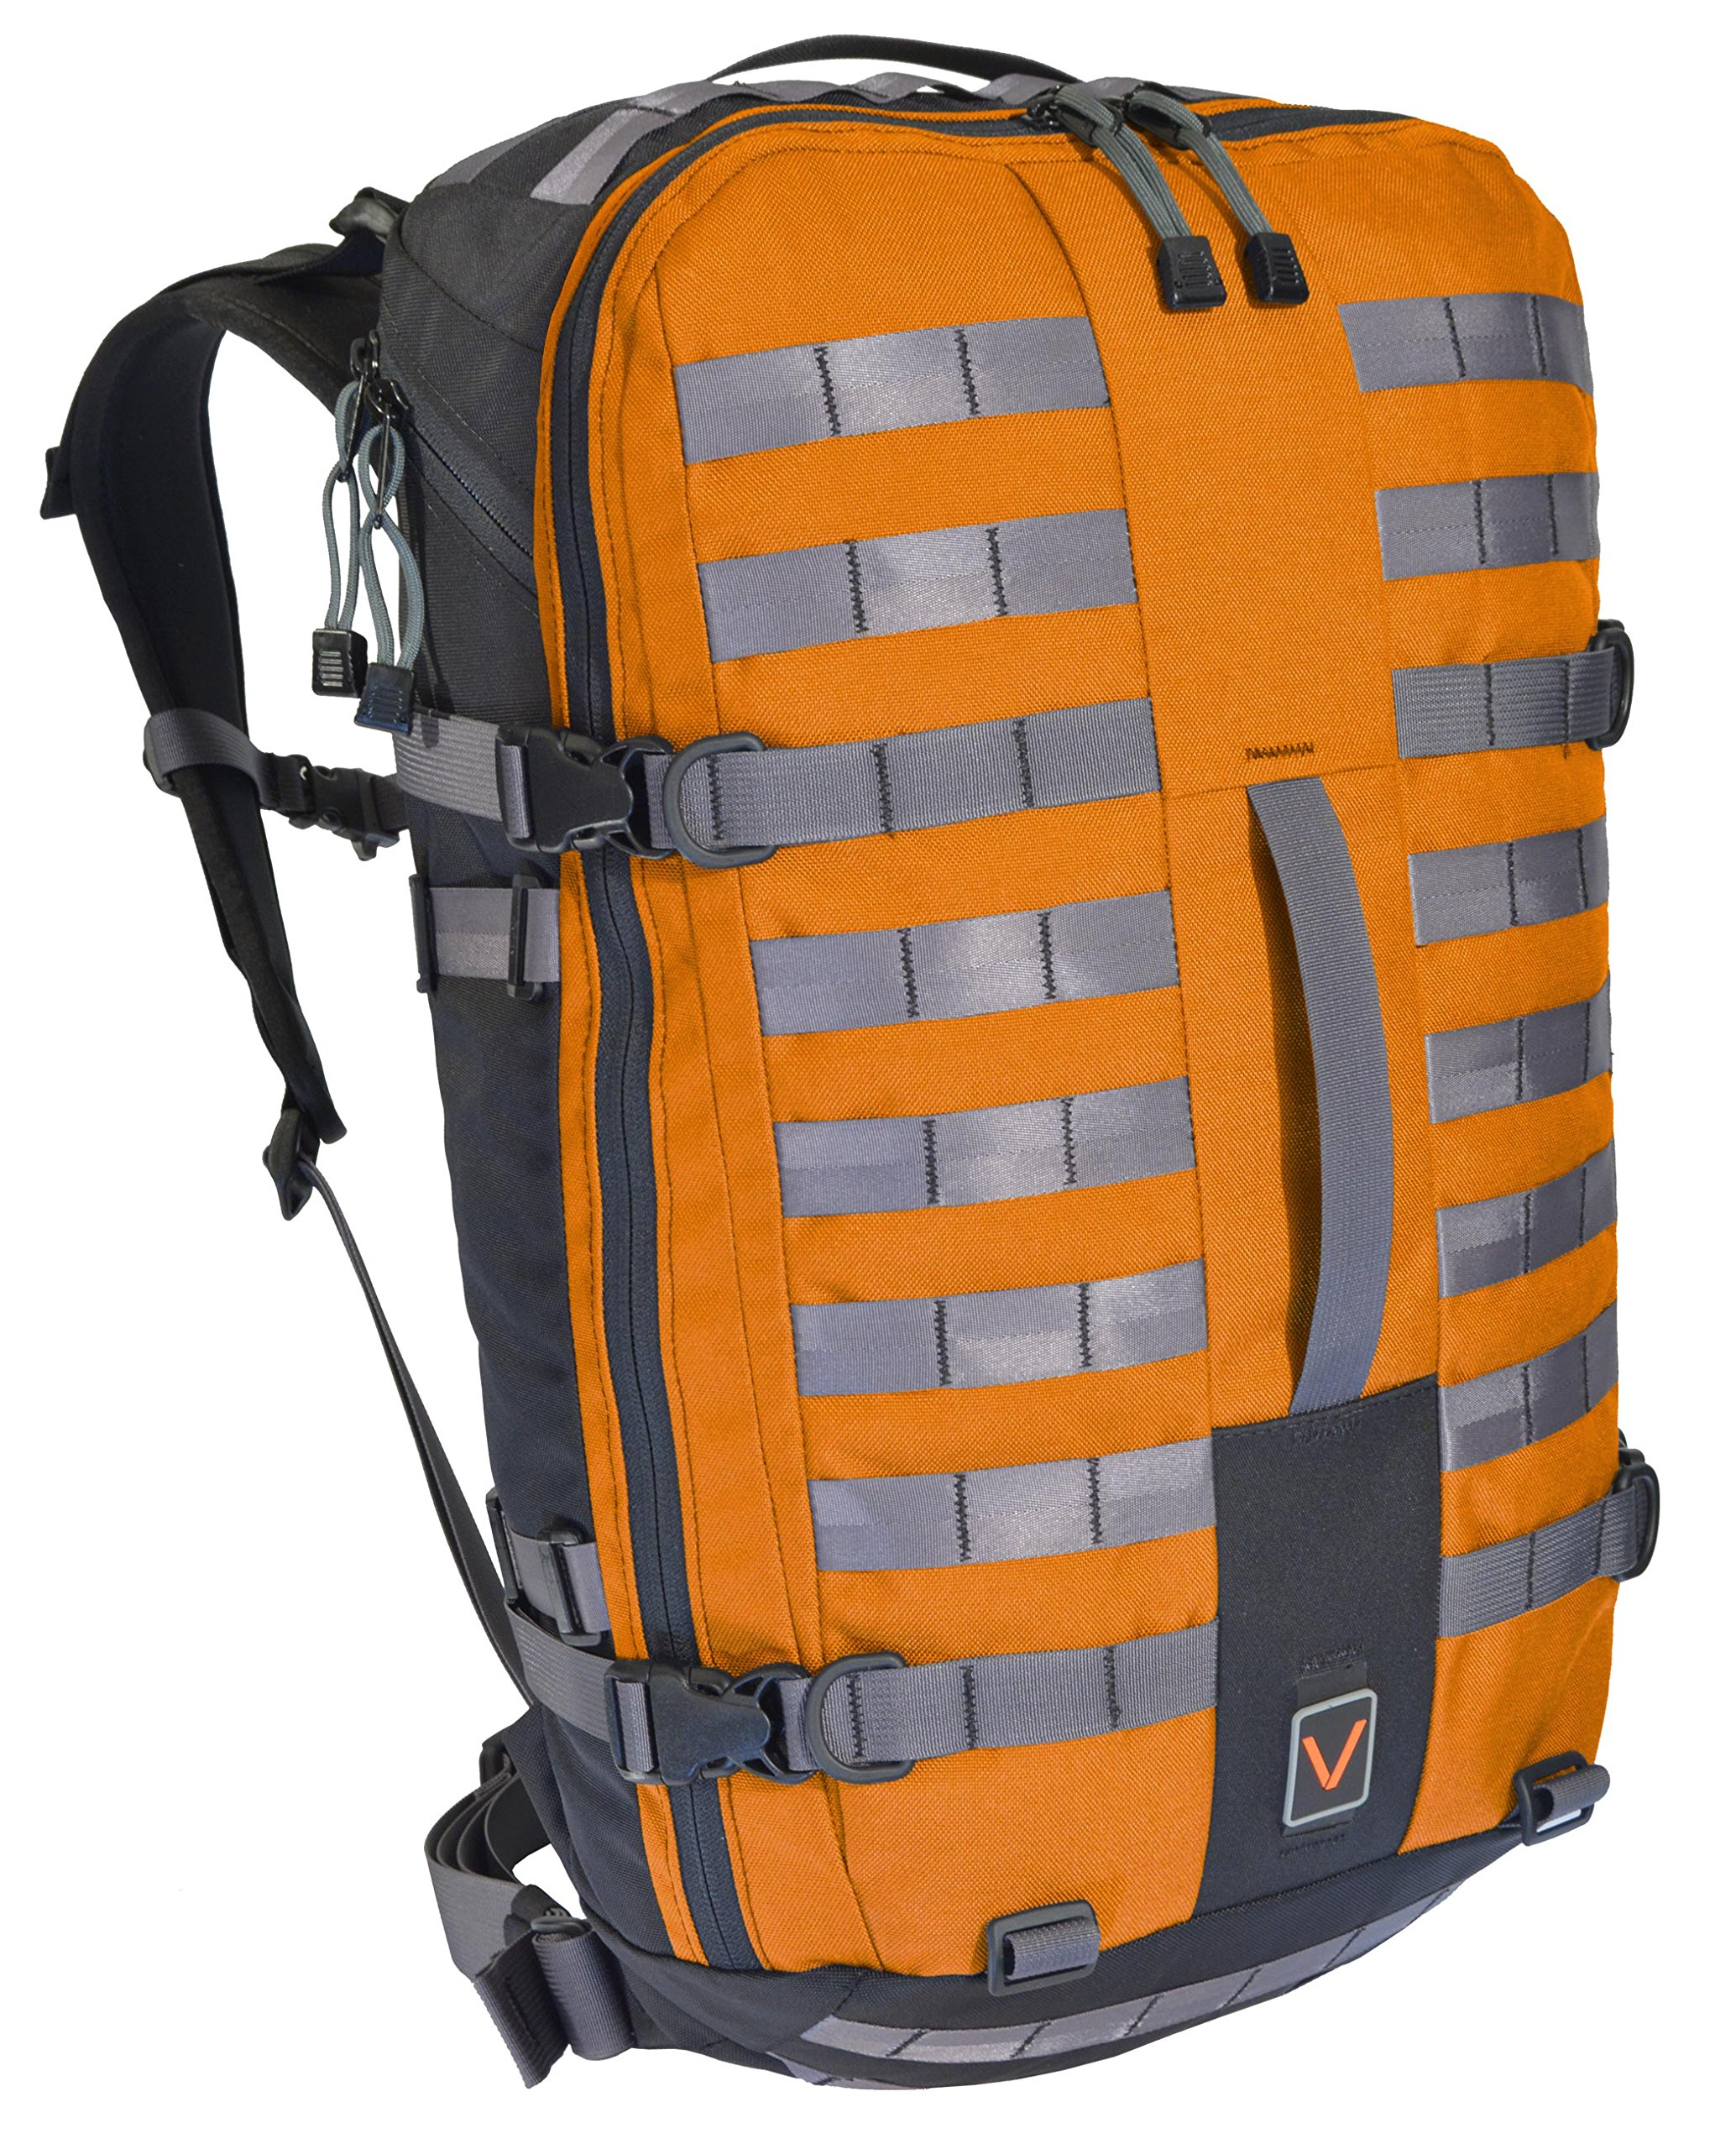 2017VTGR14 Modular Bug Out Bag, Women's Small, Orange by VITAL GEAR